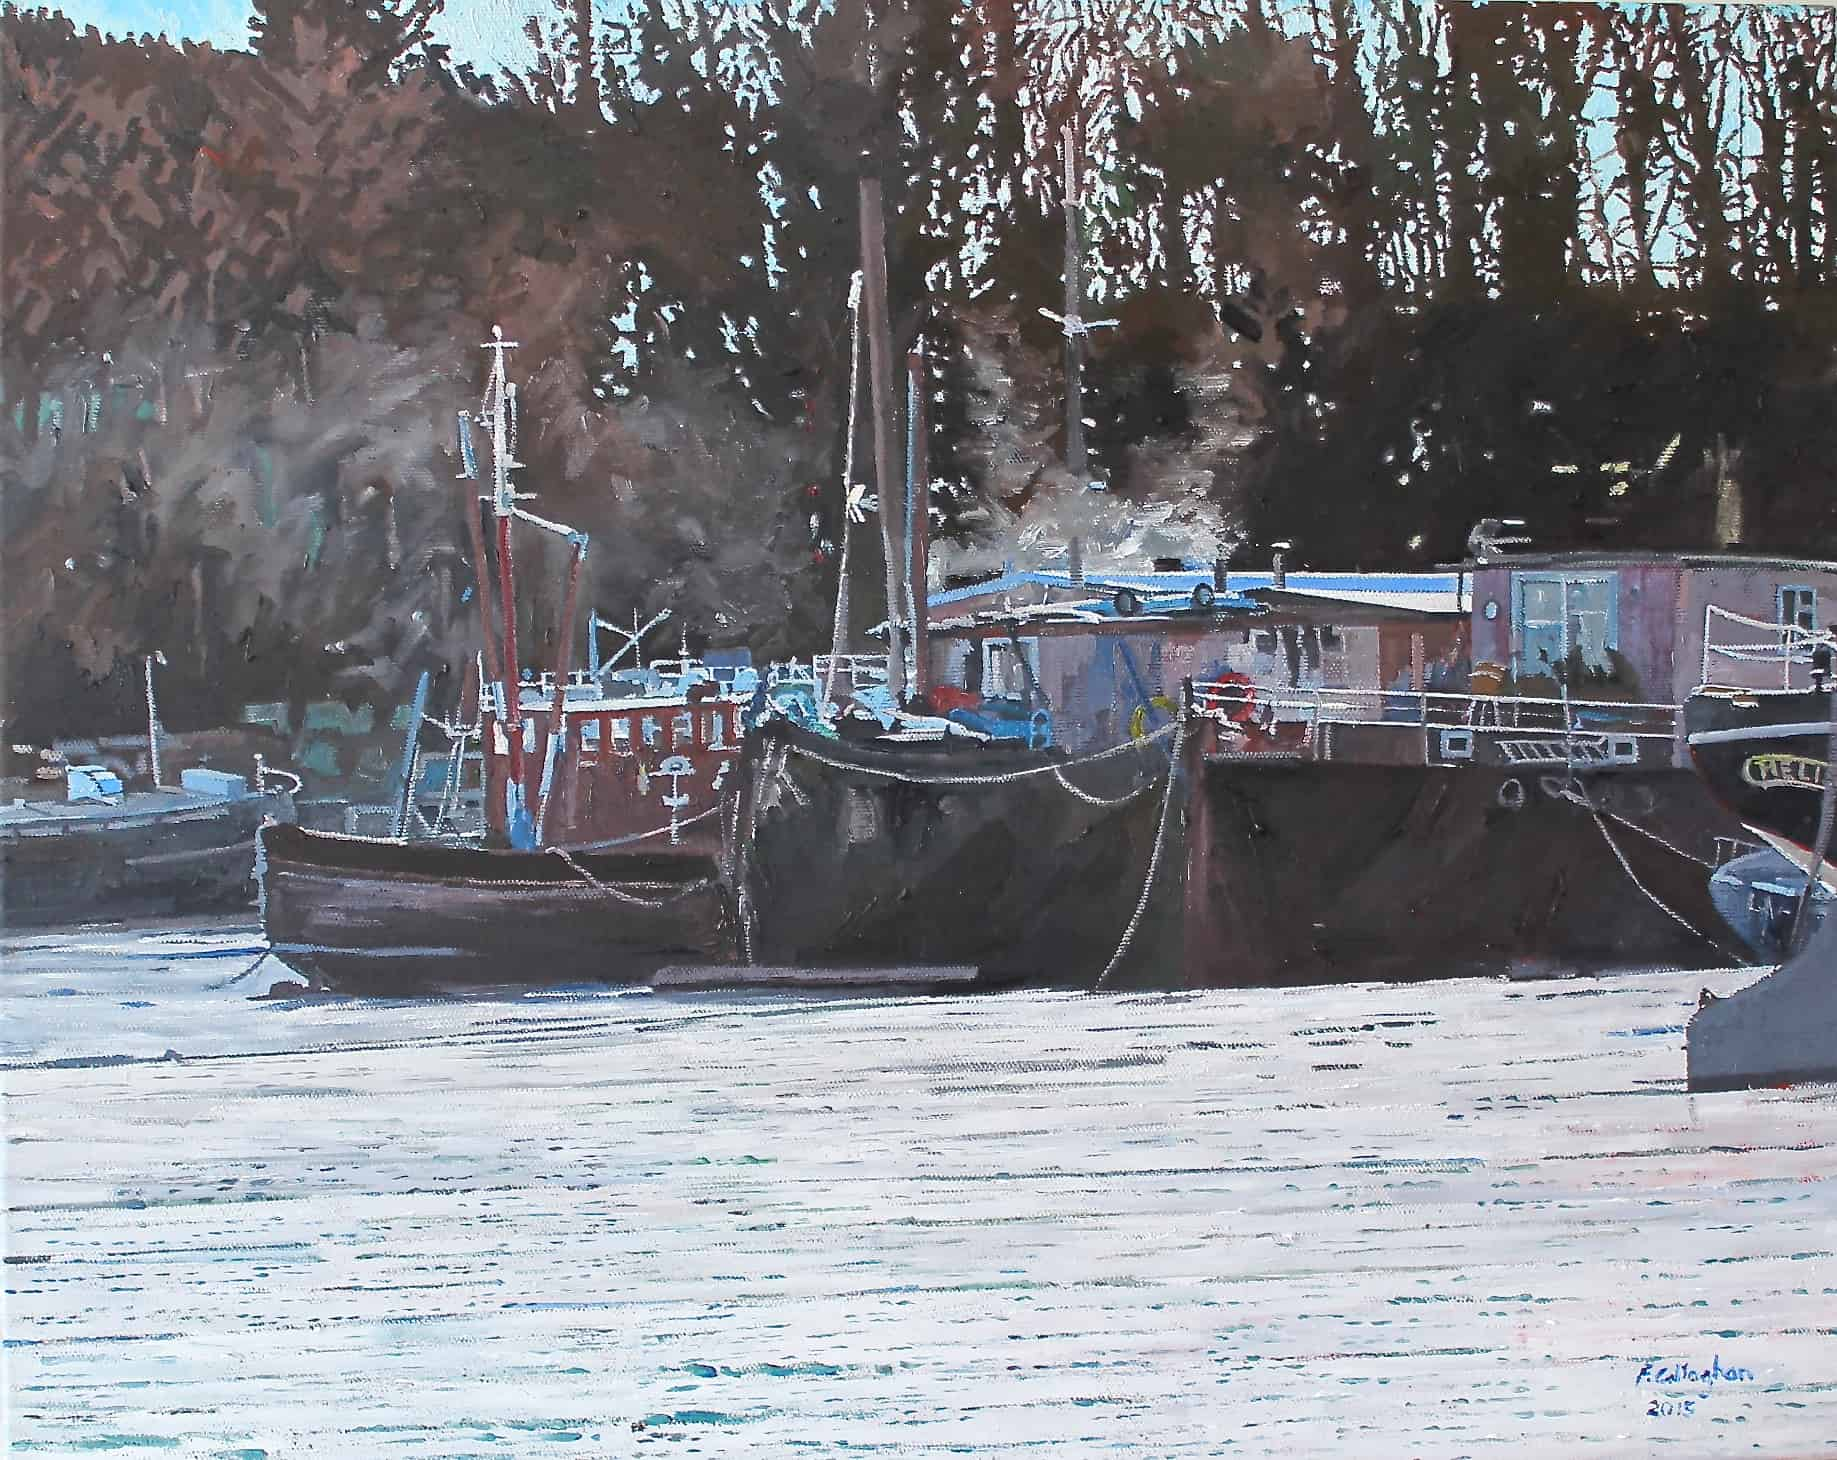 Morning at Pin Mill Painted in Oil by Frank Callaghan